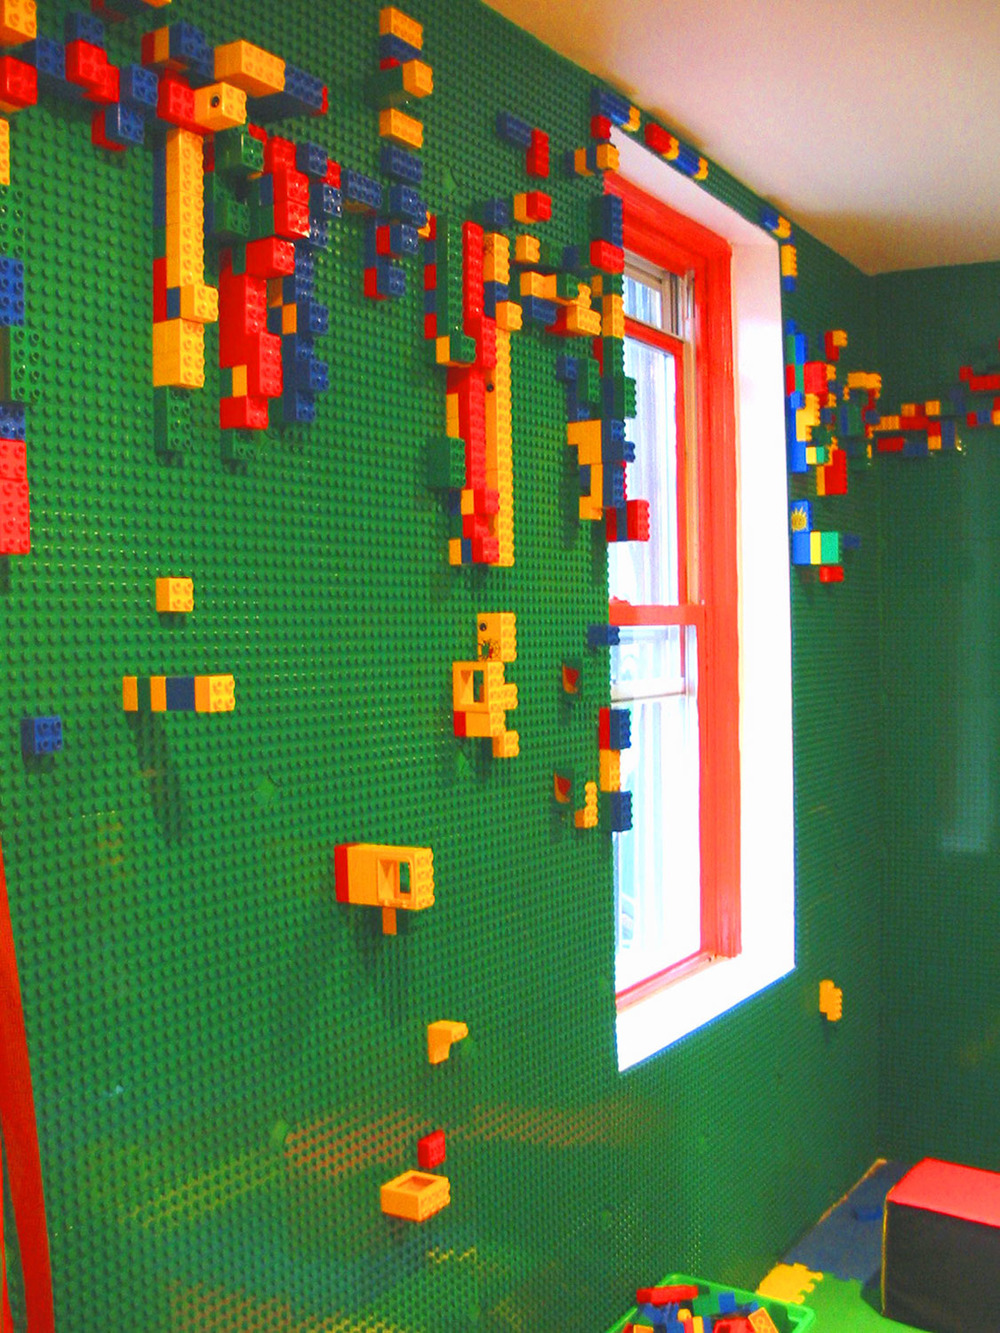 lego & window by Suzan Wines.jpg